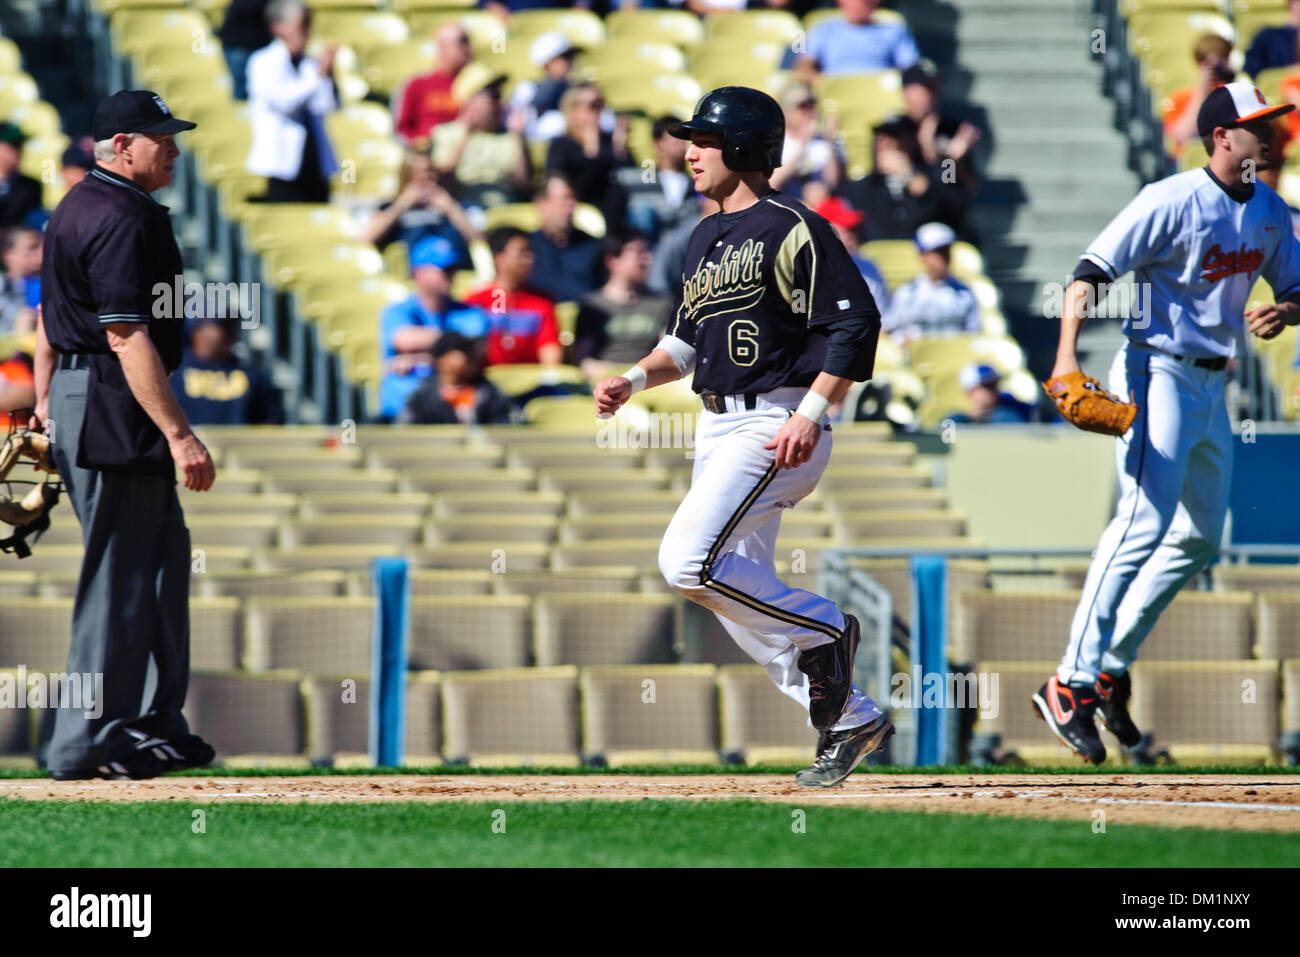 Feb. 28, 2010 - Los Angeles, California, U.S - 28 February 2010:  Vanderbilt's Brian Harris (6) steps on home - Stock Image